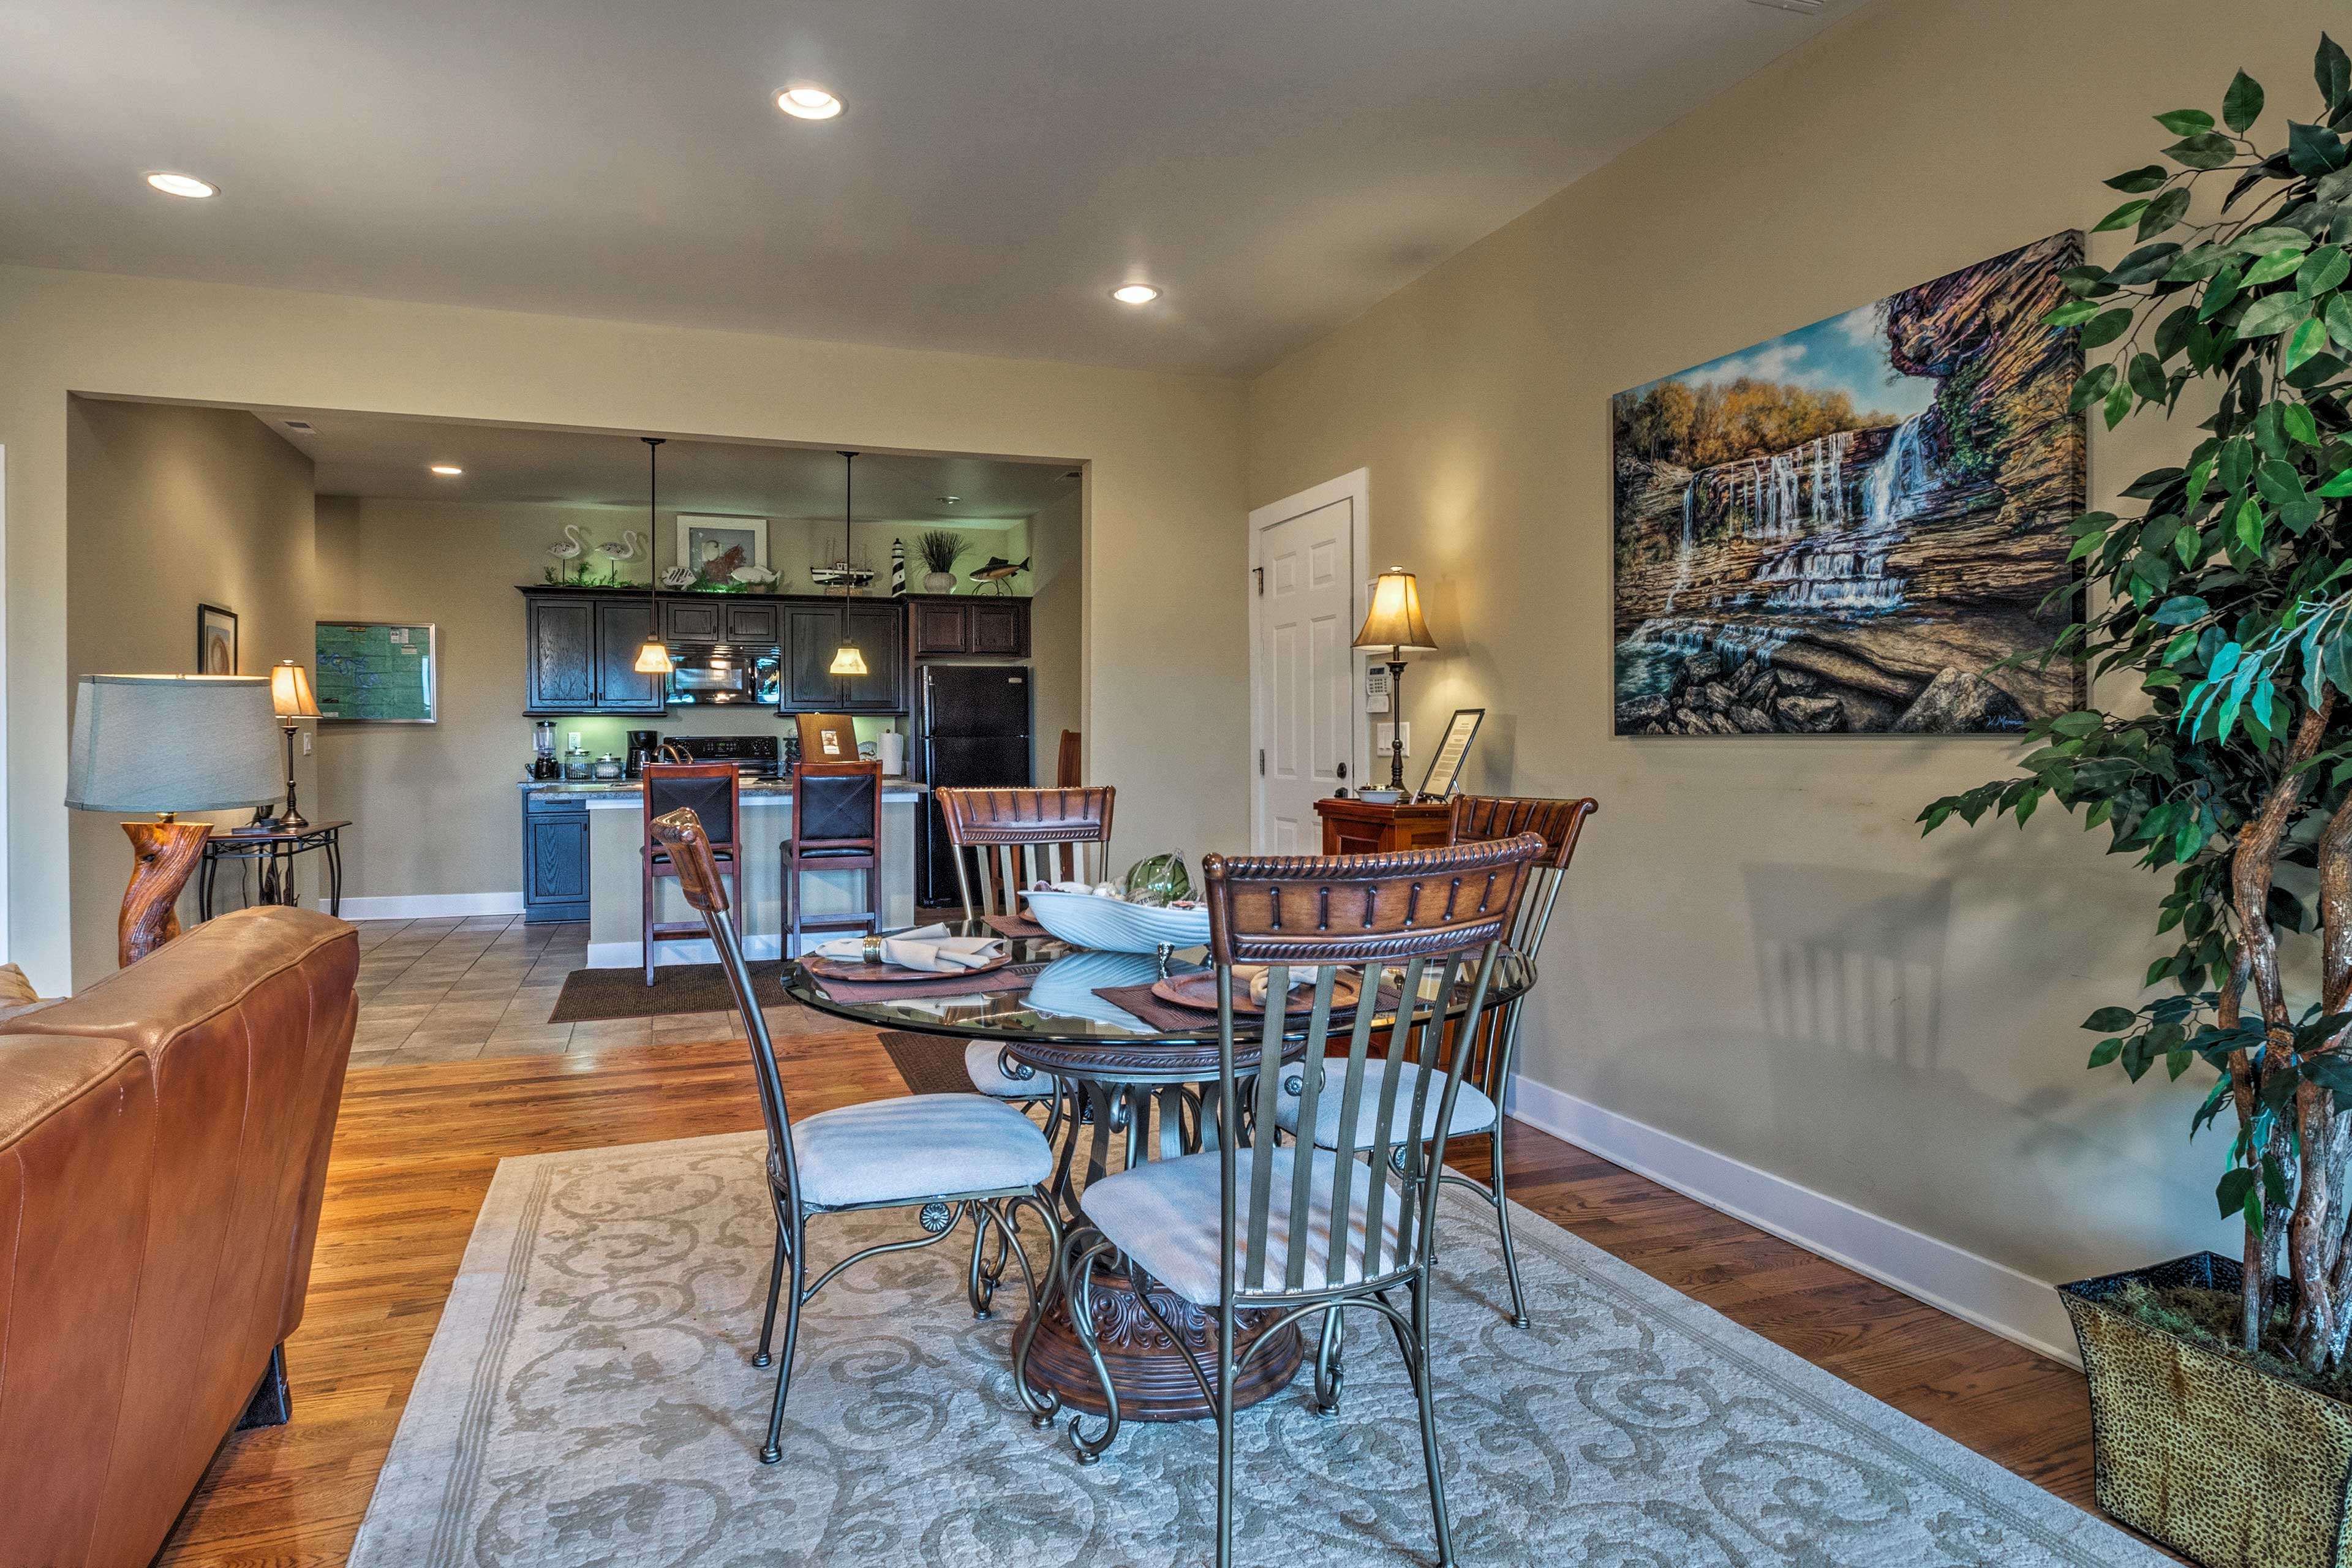 The open concept means you can enjoy the flat-screen TV from the table too!